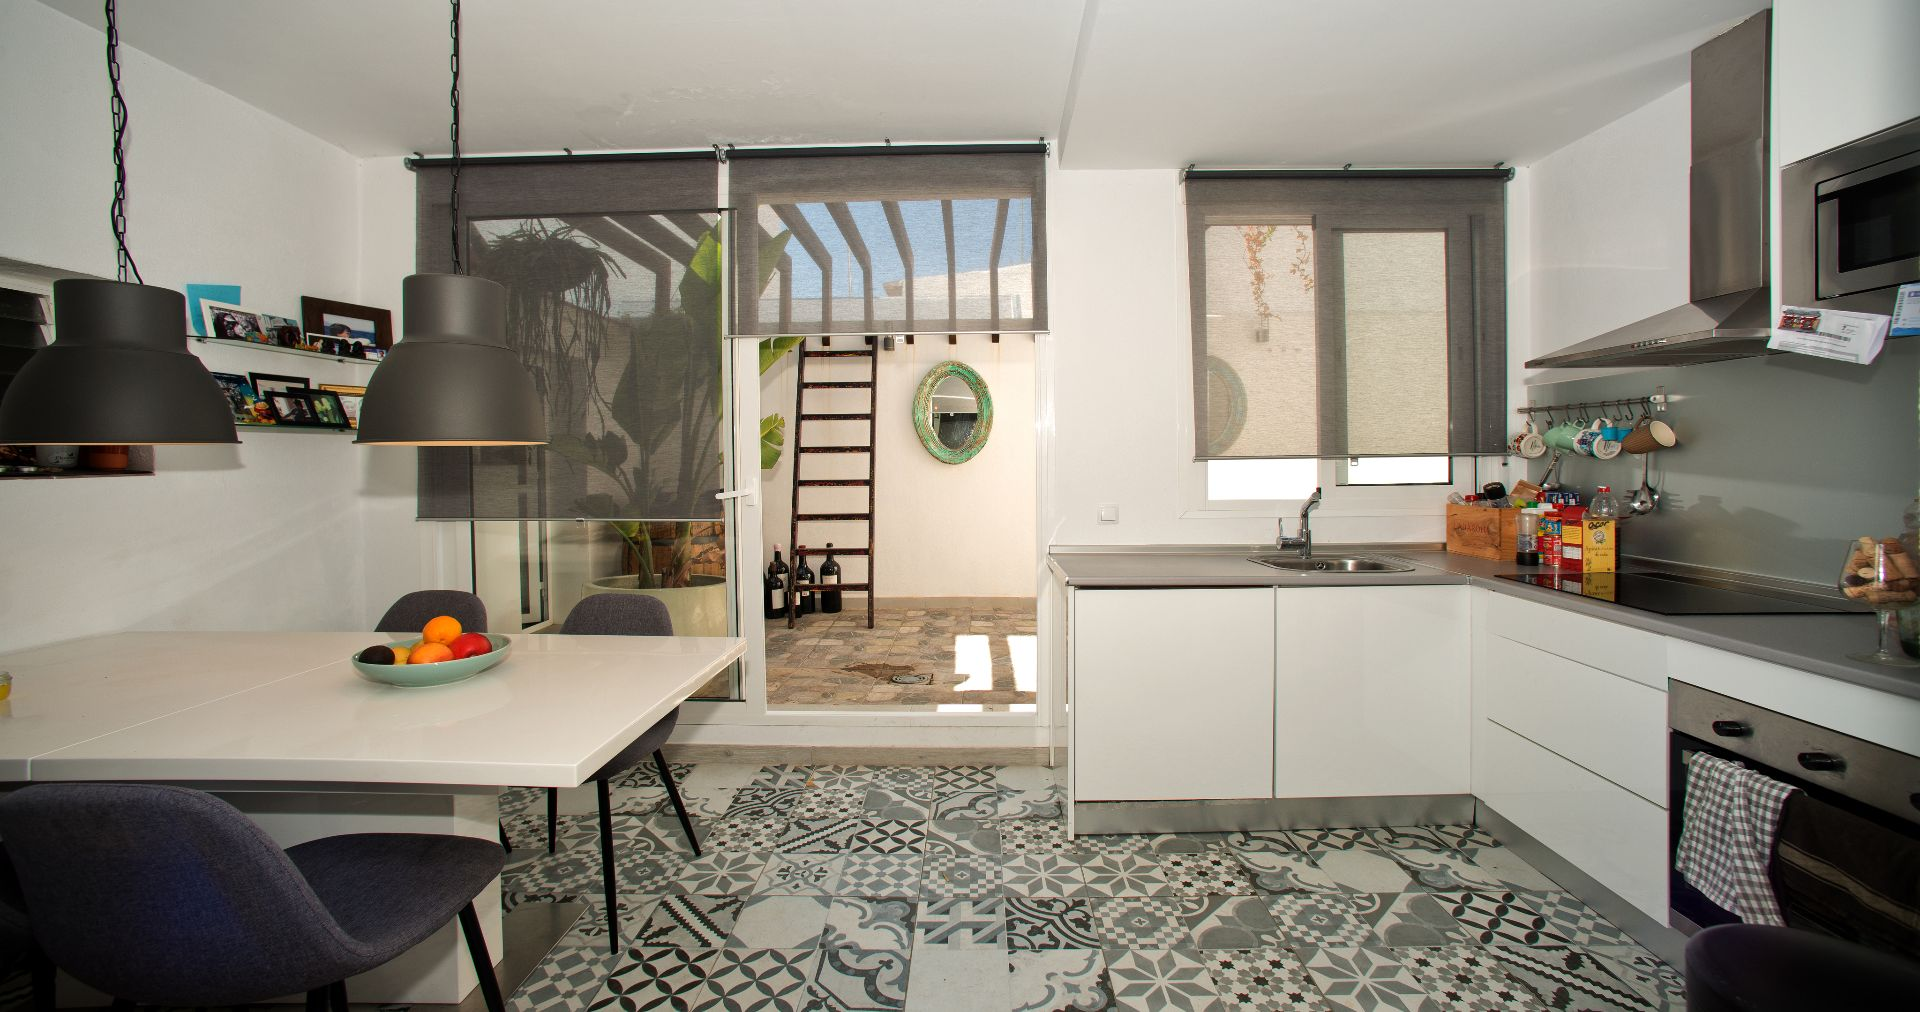 Terraced House in San Pedro de Alcántara, CENTRO SAN PEDRO, for sale